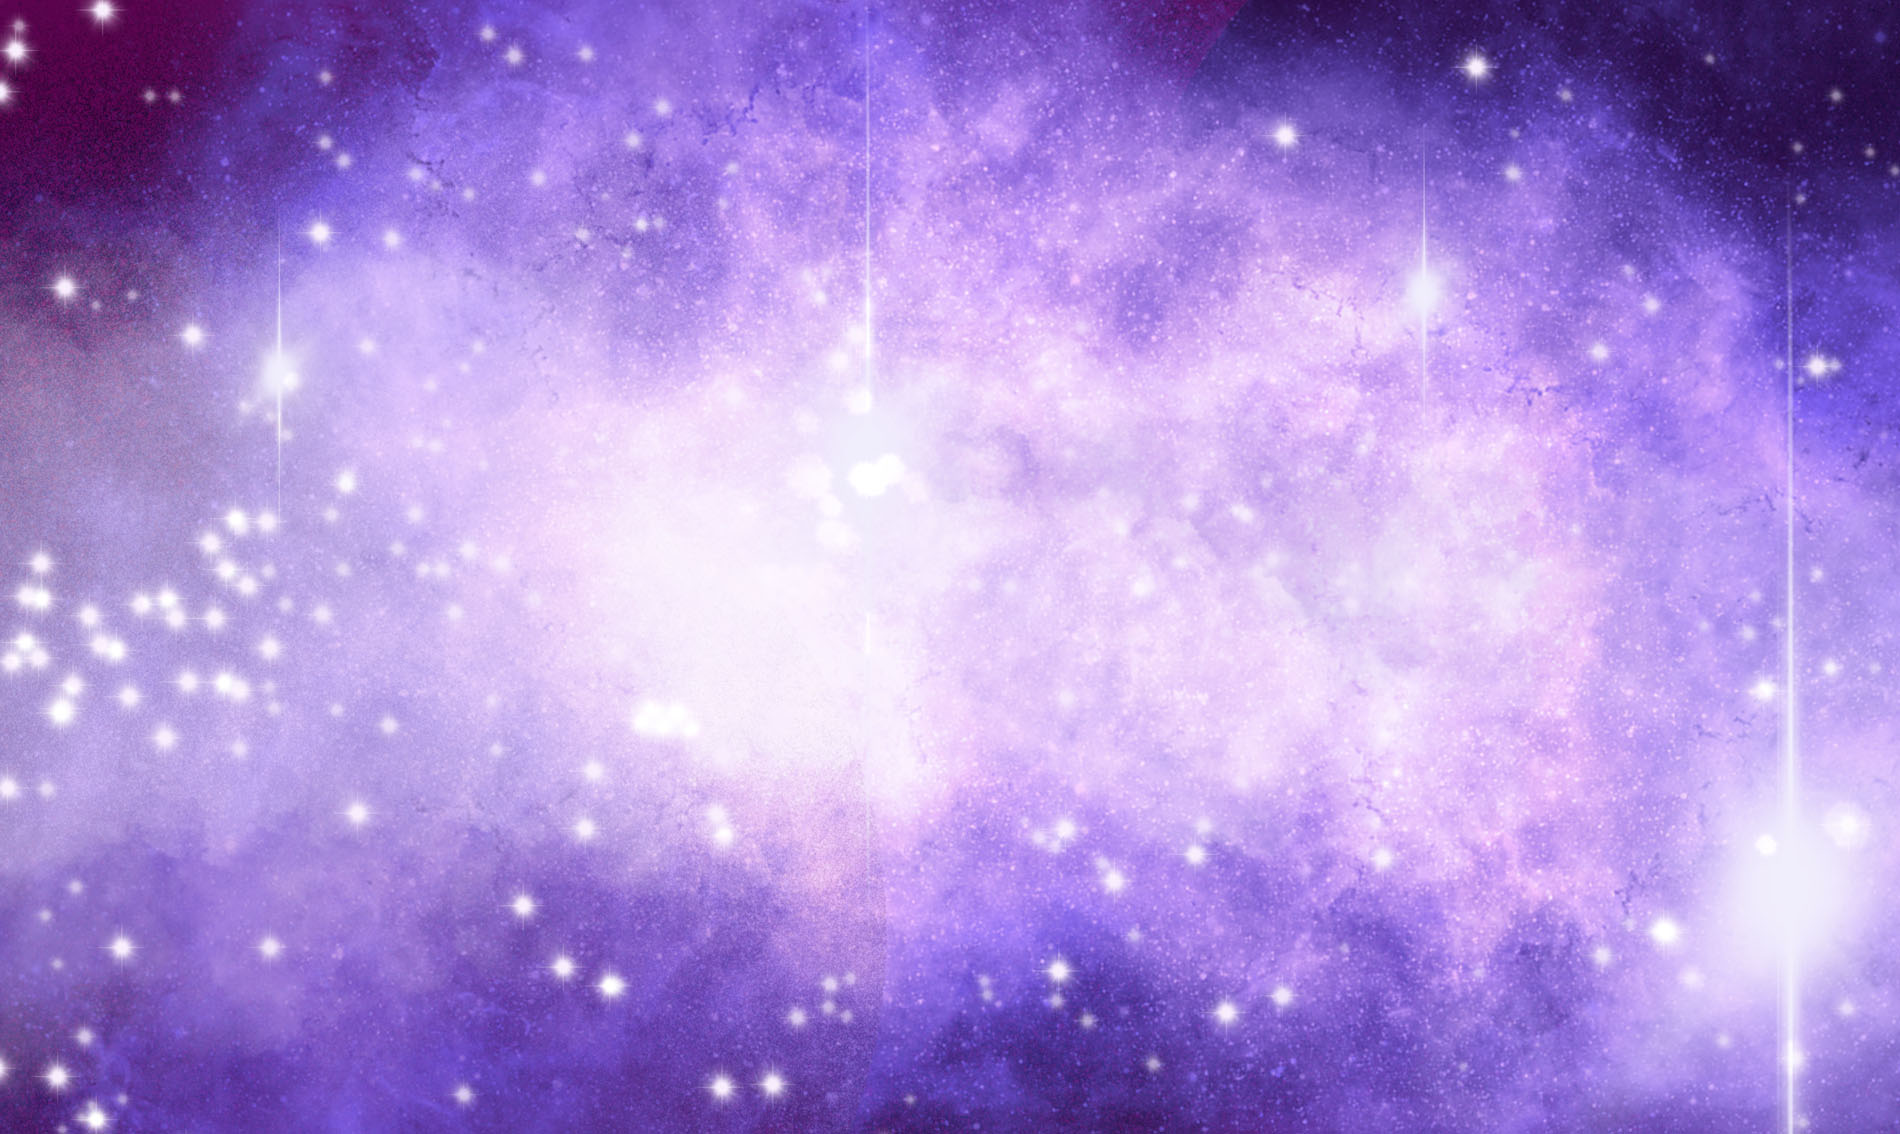 Abstract Space example image 4